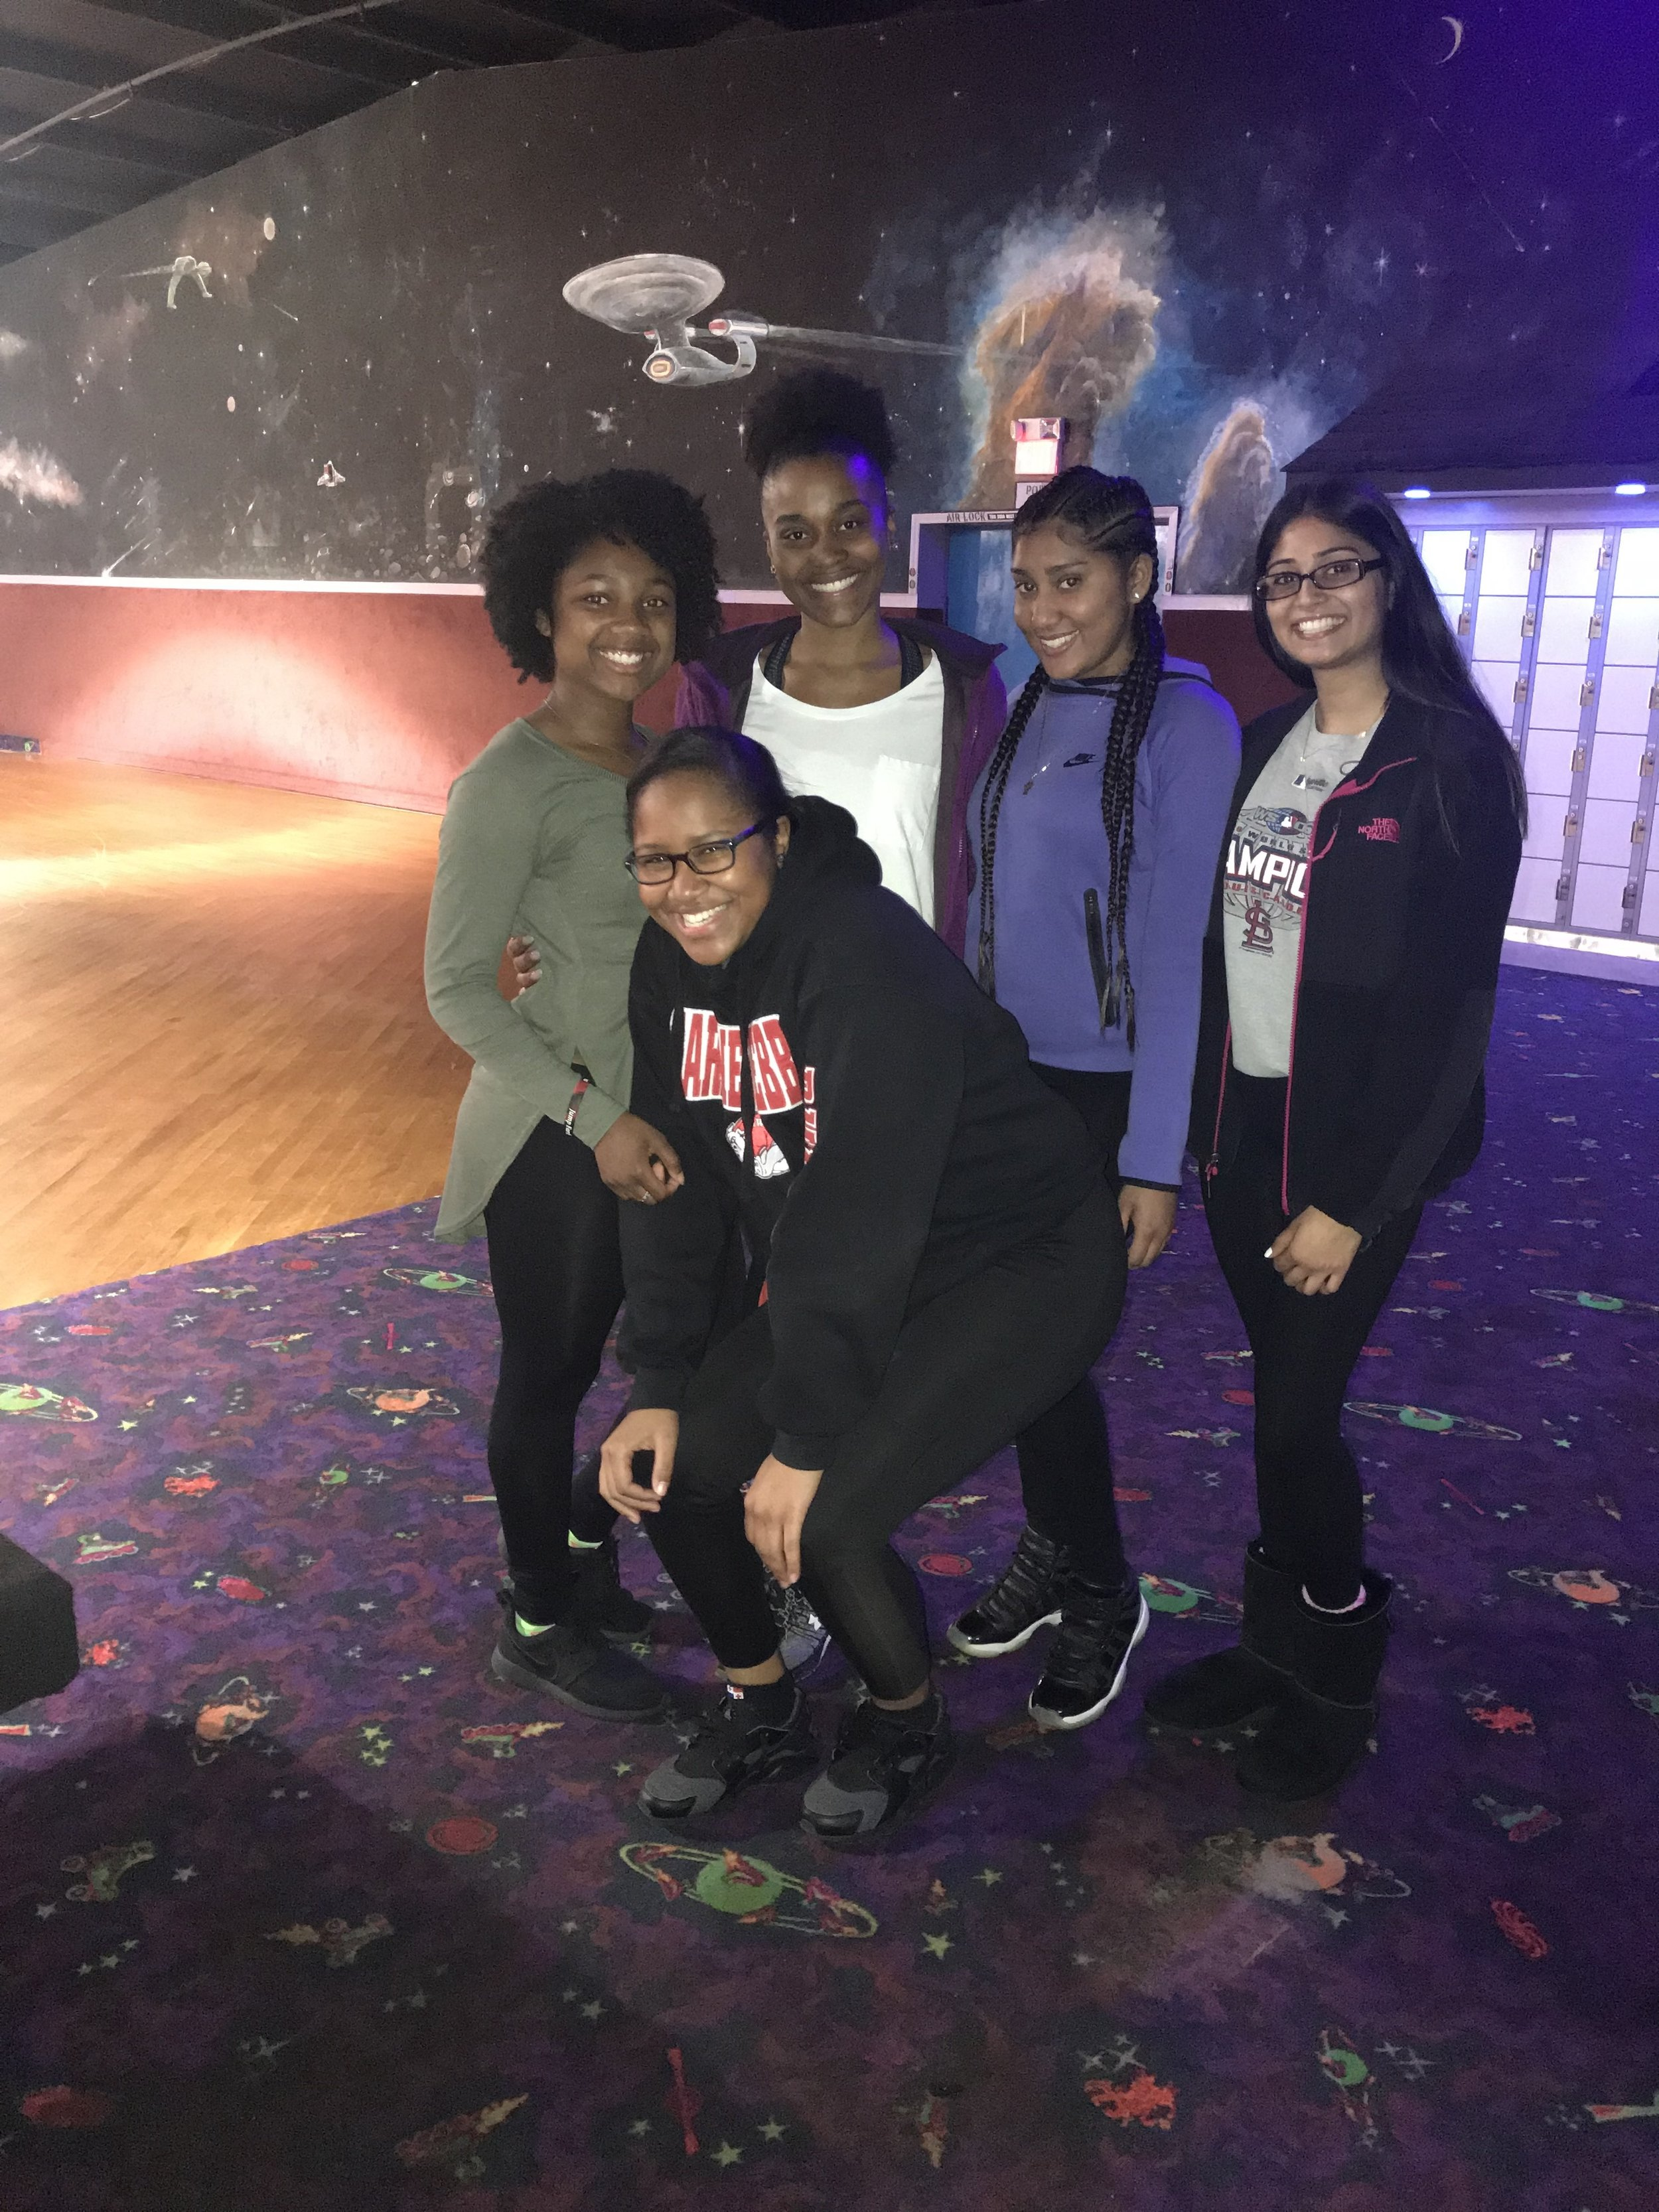 Mia, second from left, and friends at Skate Night.